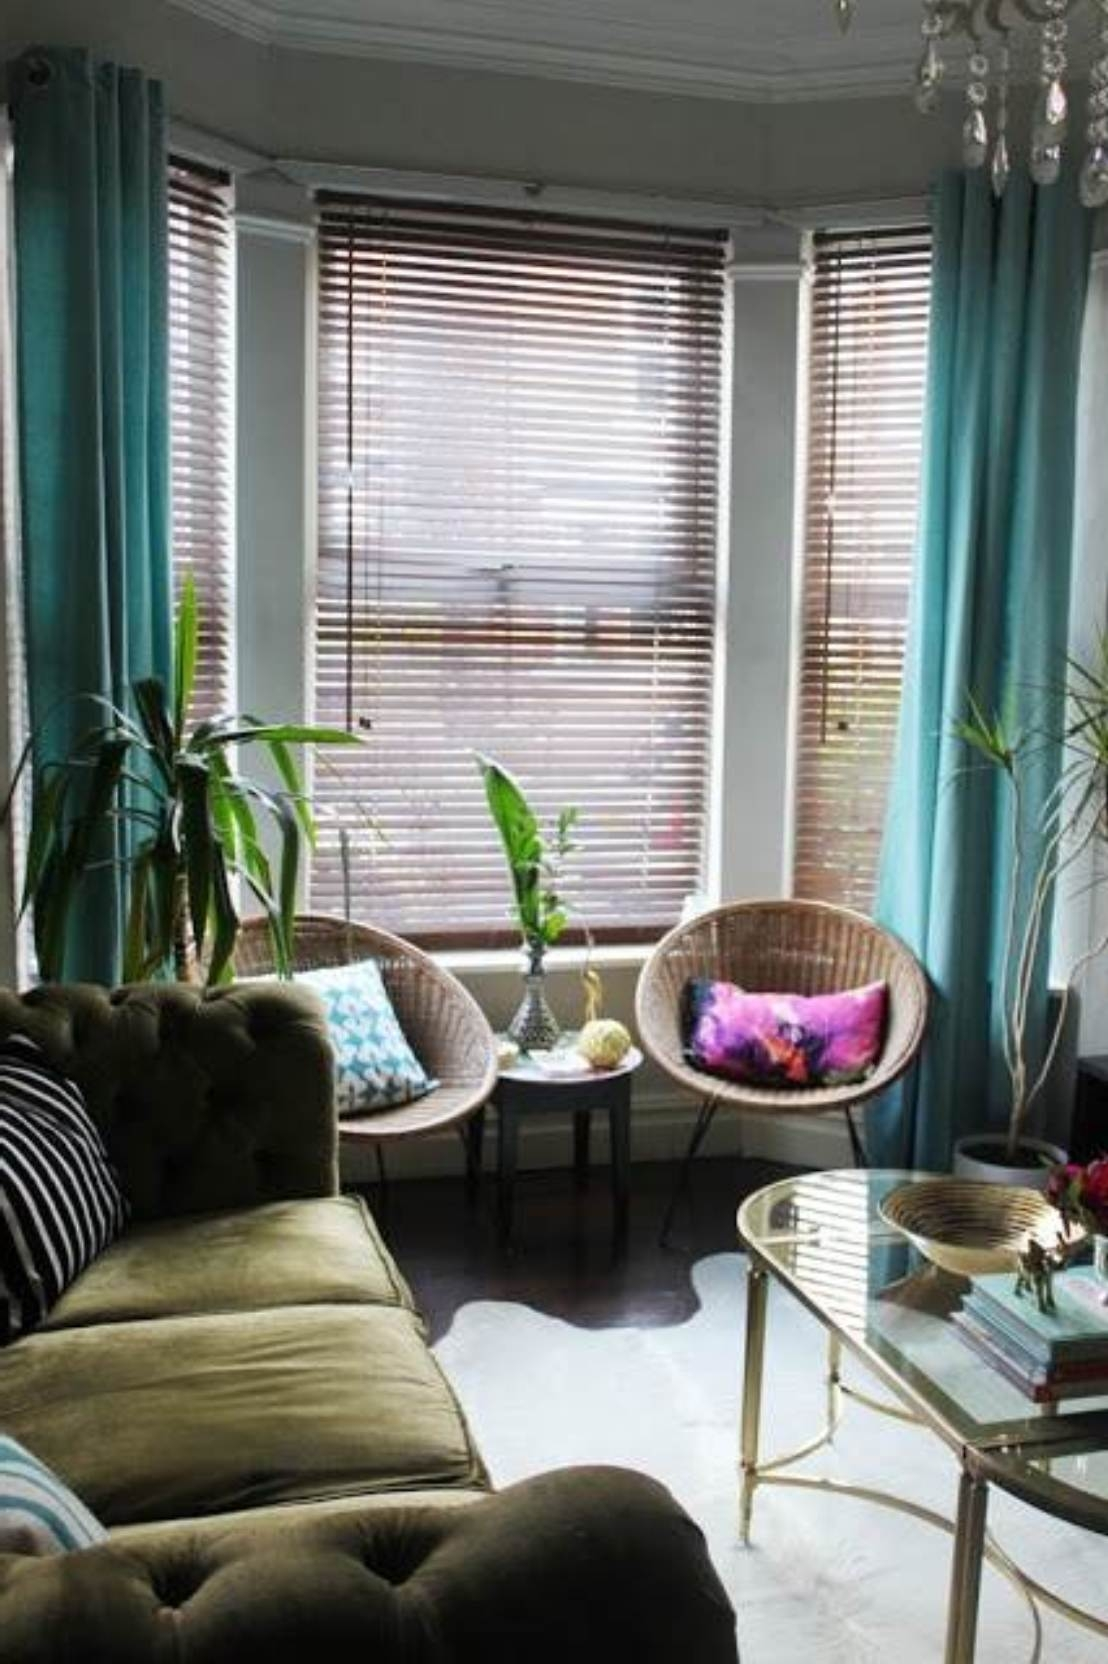 Ideas For Bay Window Decorating Home Pinterest I Am Window In Front Room Blinds (View 13 of 15)